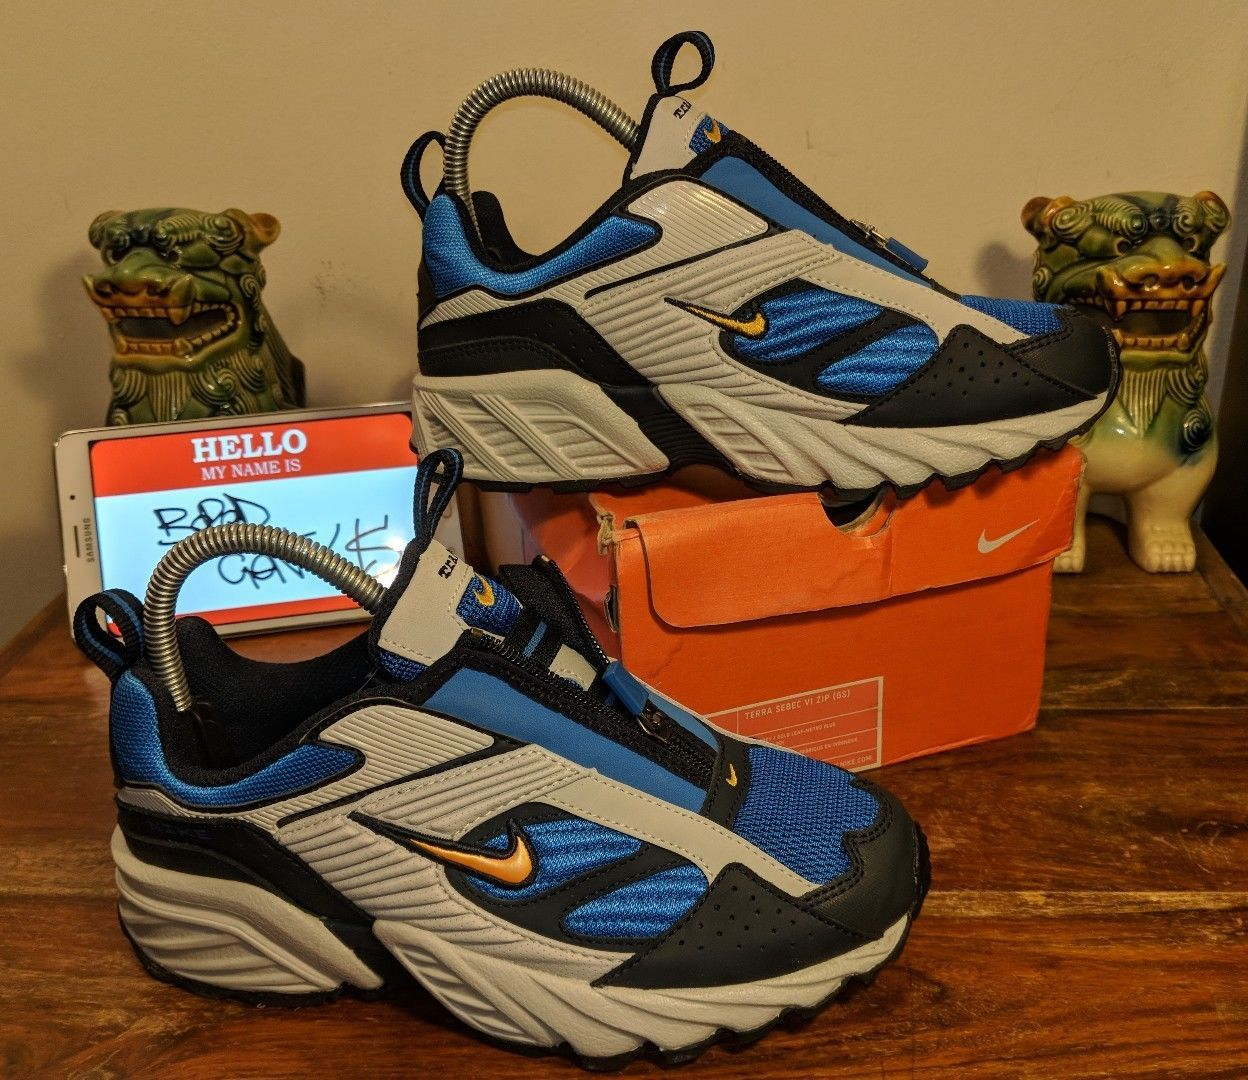 cheap for discount c260e 2b65f VINTAGE Nike Terra Sebec ZIP (IV 2004) uk5.5 RARO 🔥 OG (come ACG Trail Max  Air Zoom)   eBay